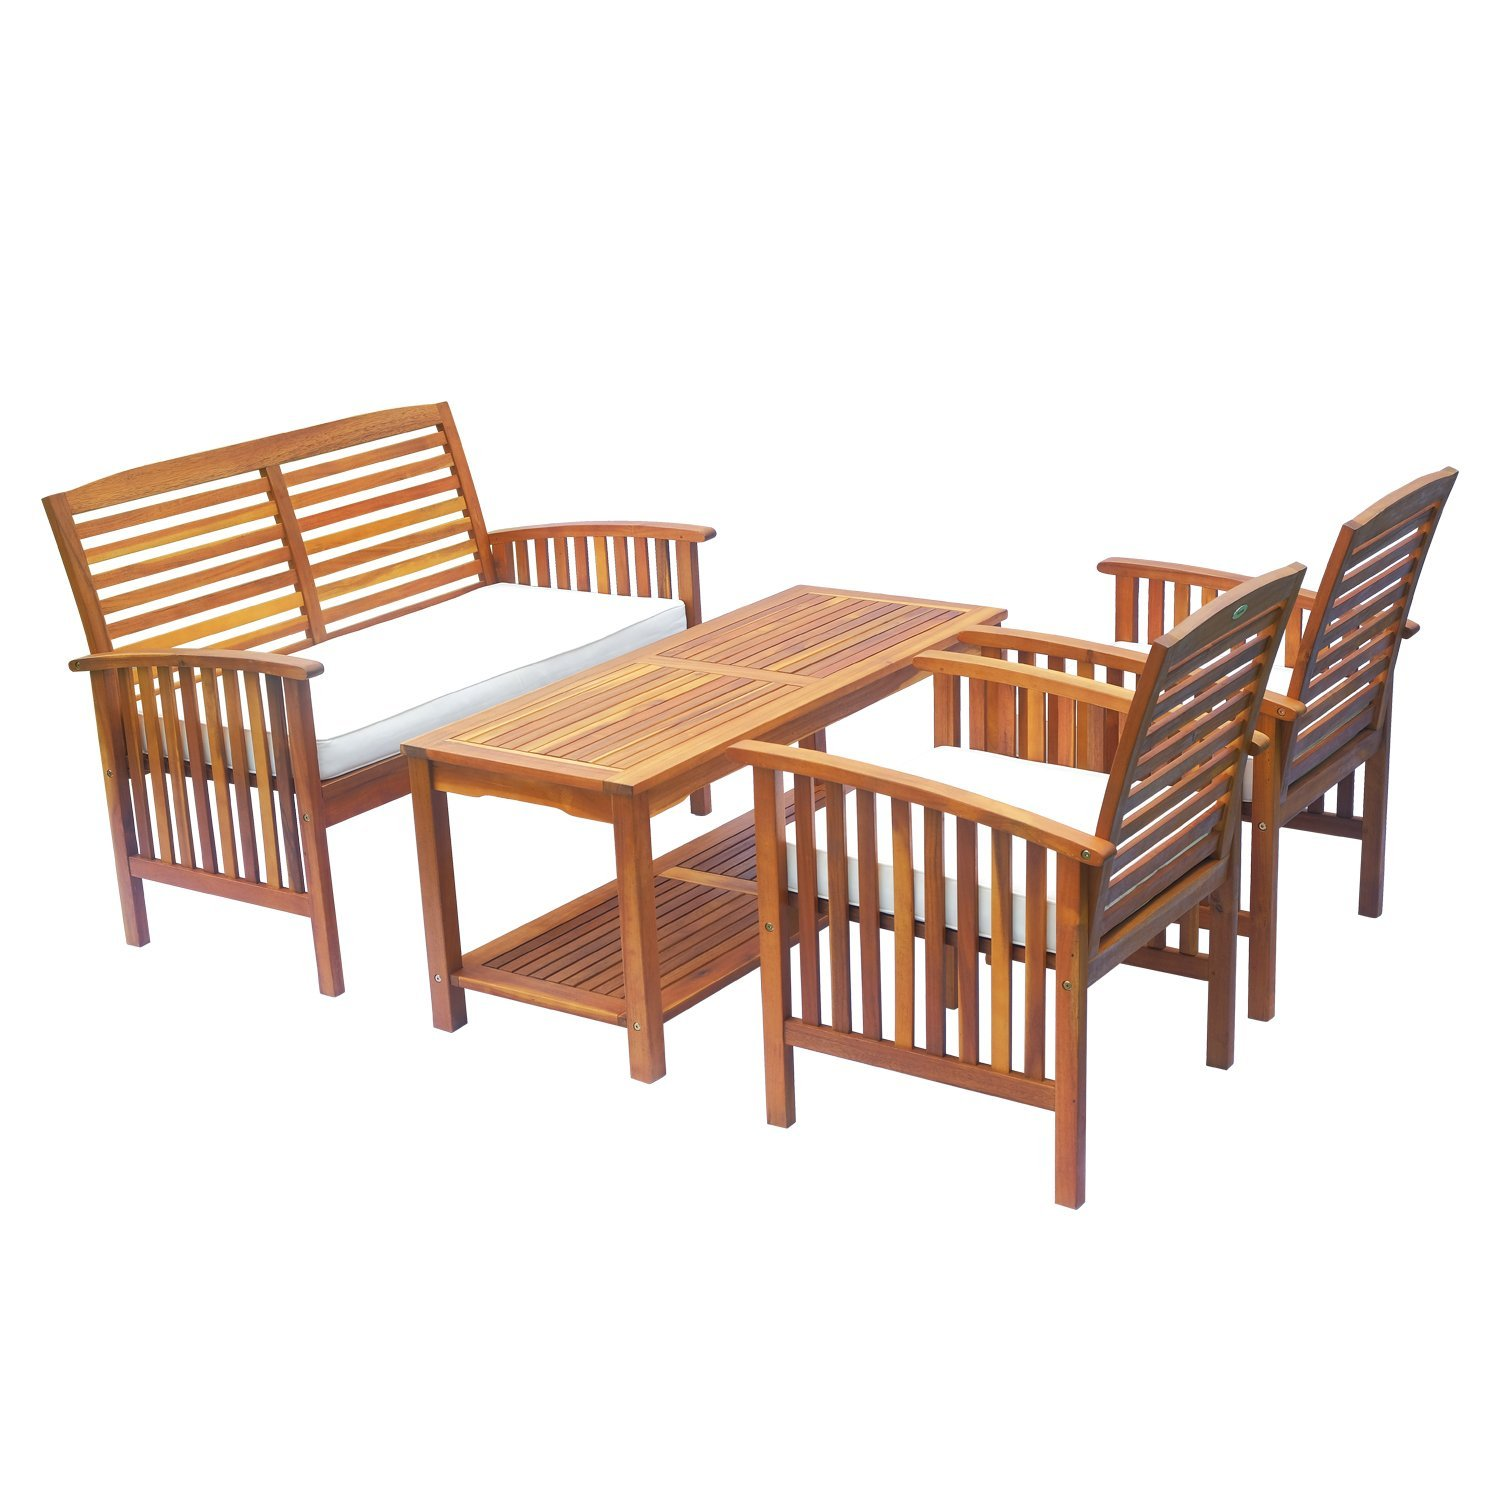 Outsunny 4 Piece Acacia Wood Outdoor Conversation Set ... on Outdoor Loveseat Sets id=79873